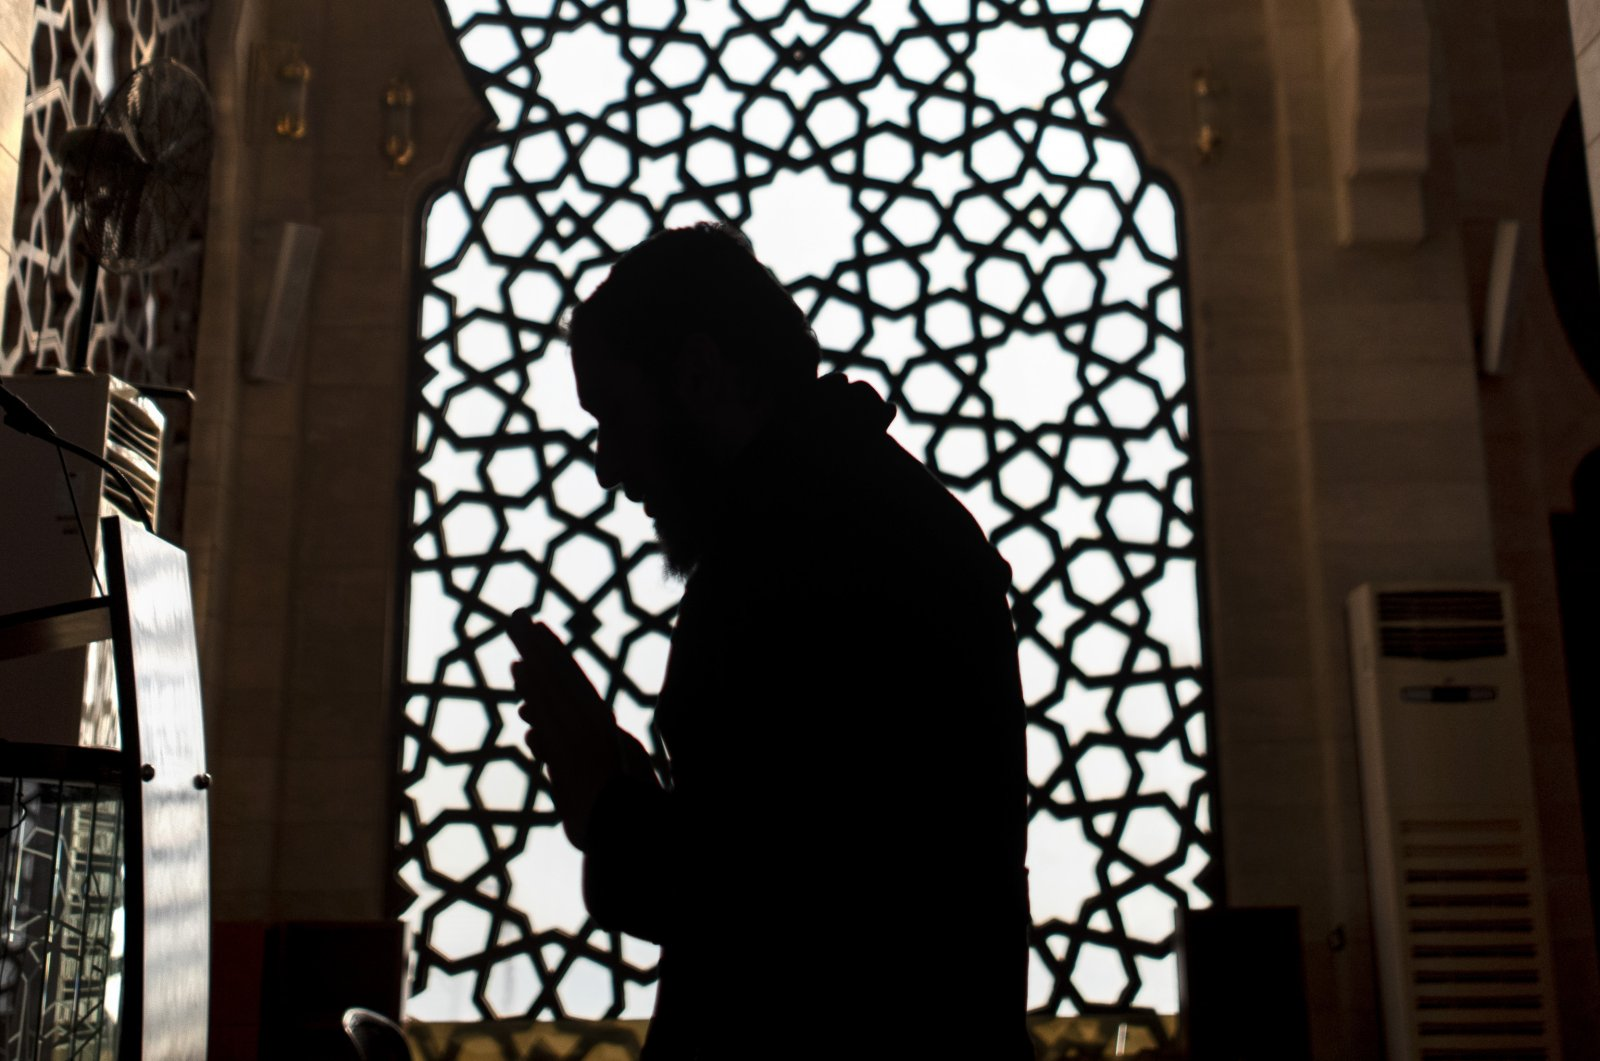 A Palestinian imam prays in a mosque during Ramadan, Gaza City, April 22, 2020. (AP Photo)